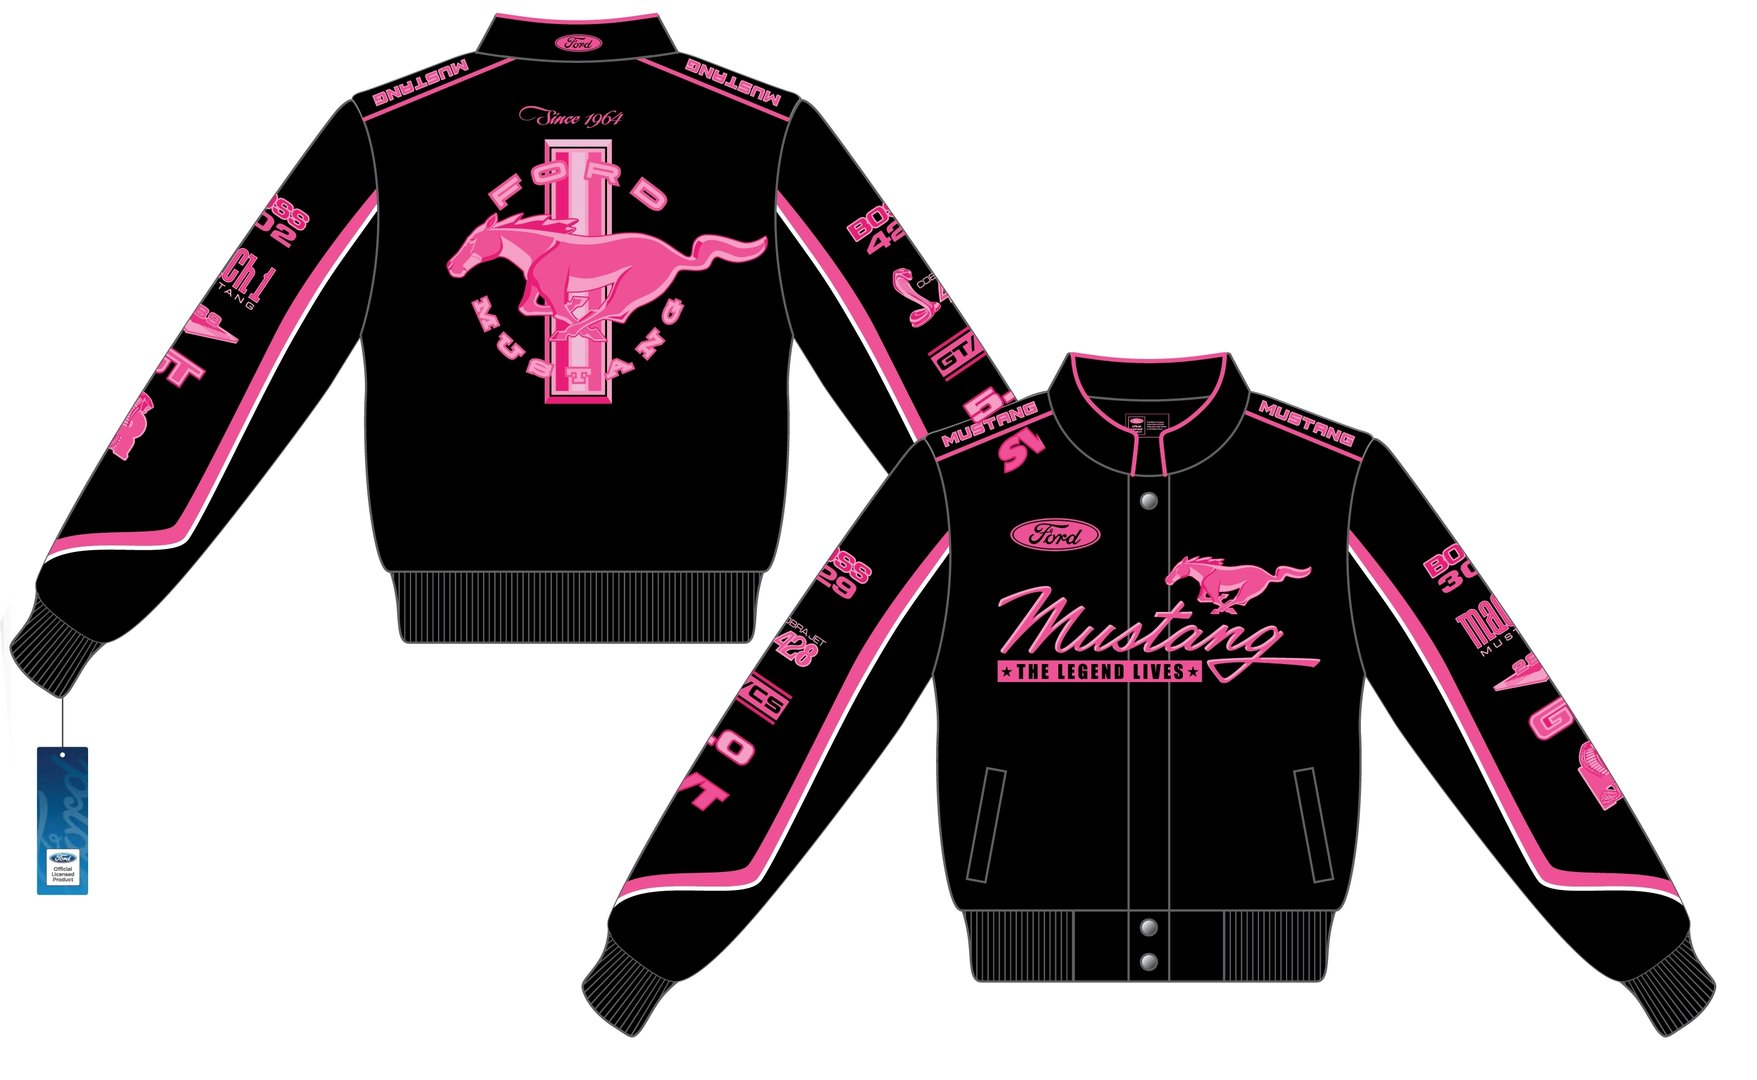 Mustang ladies jacket - colour edition